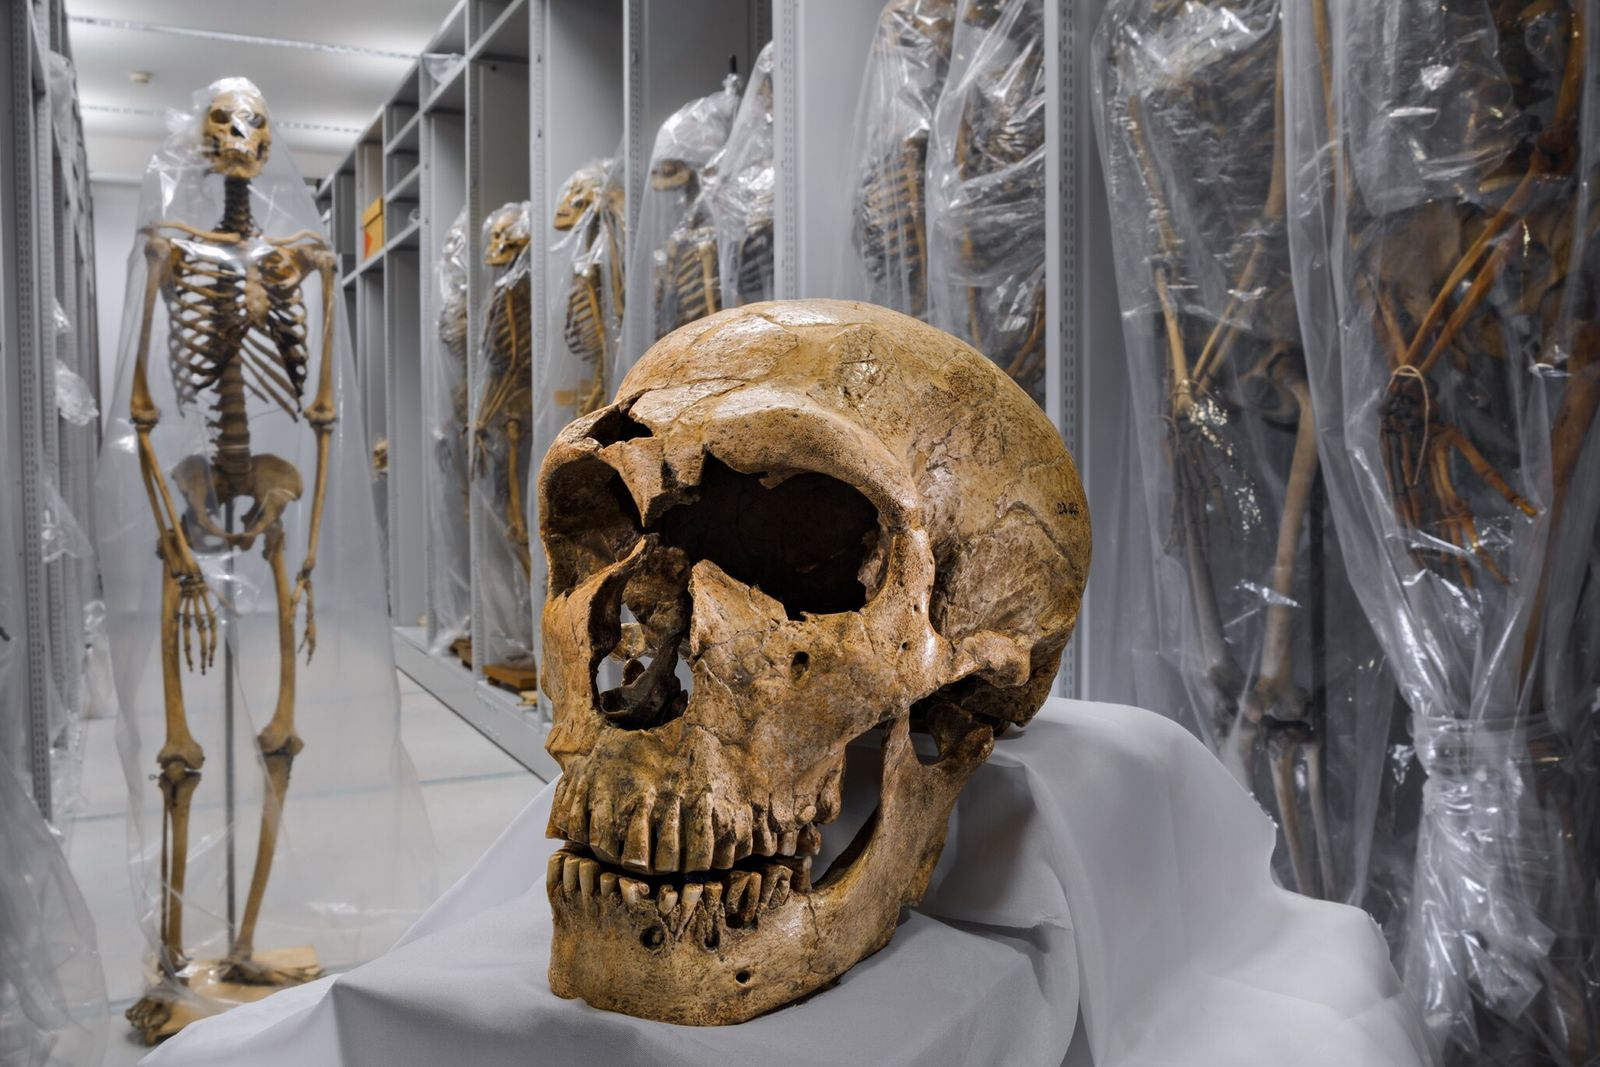 A Neanderthal skull, one of the most complete yet found, rests near human skeletons in the ...